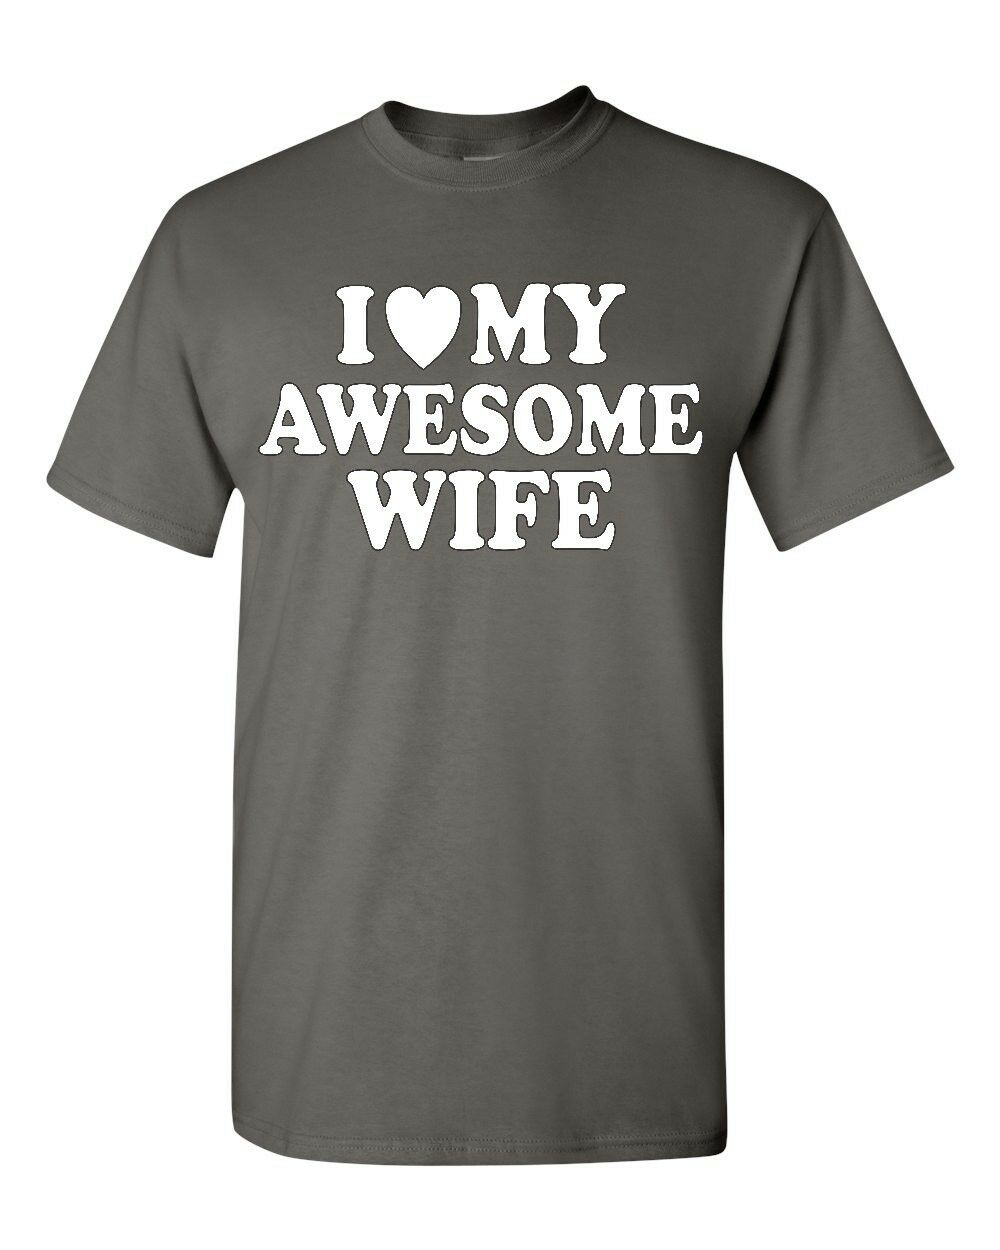 I Love My Awesome Wife T Shirt Funny Couples Matching Anniversary Valentines Tee free shipping cheap tee tops wholesale tee